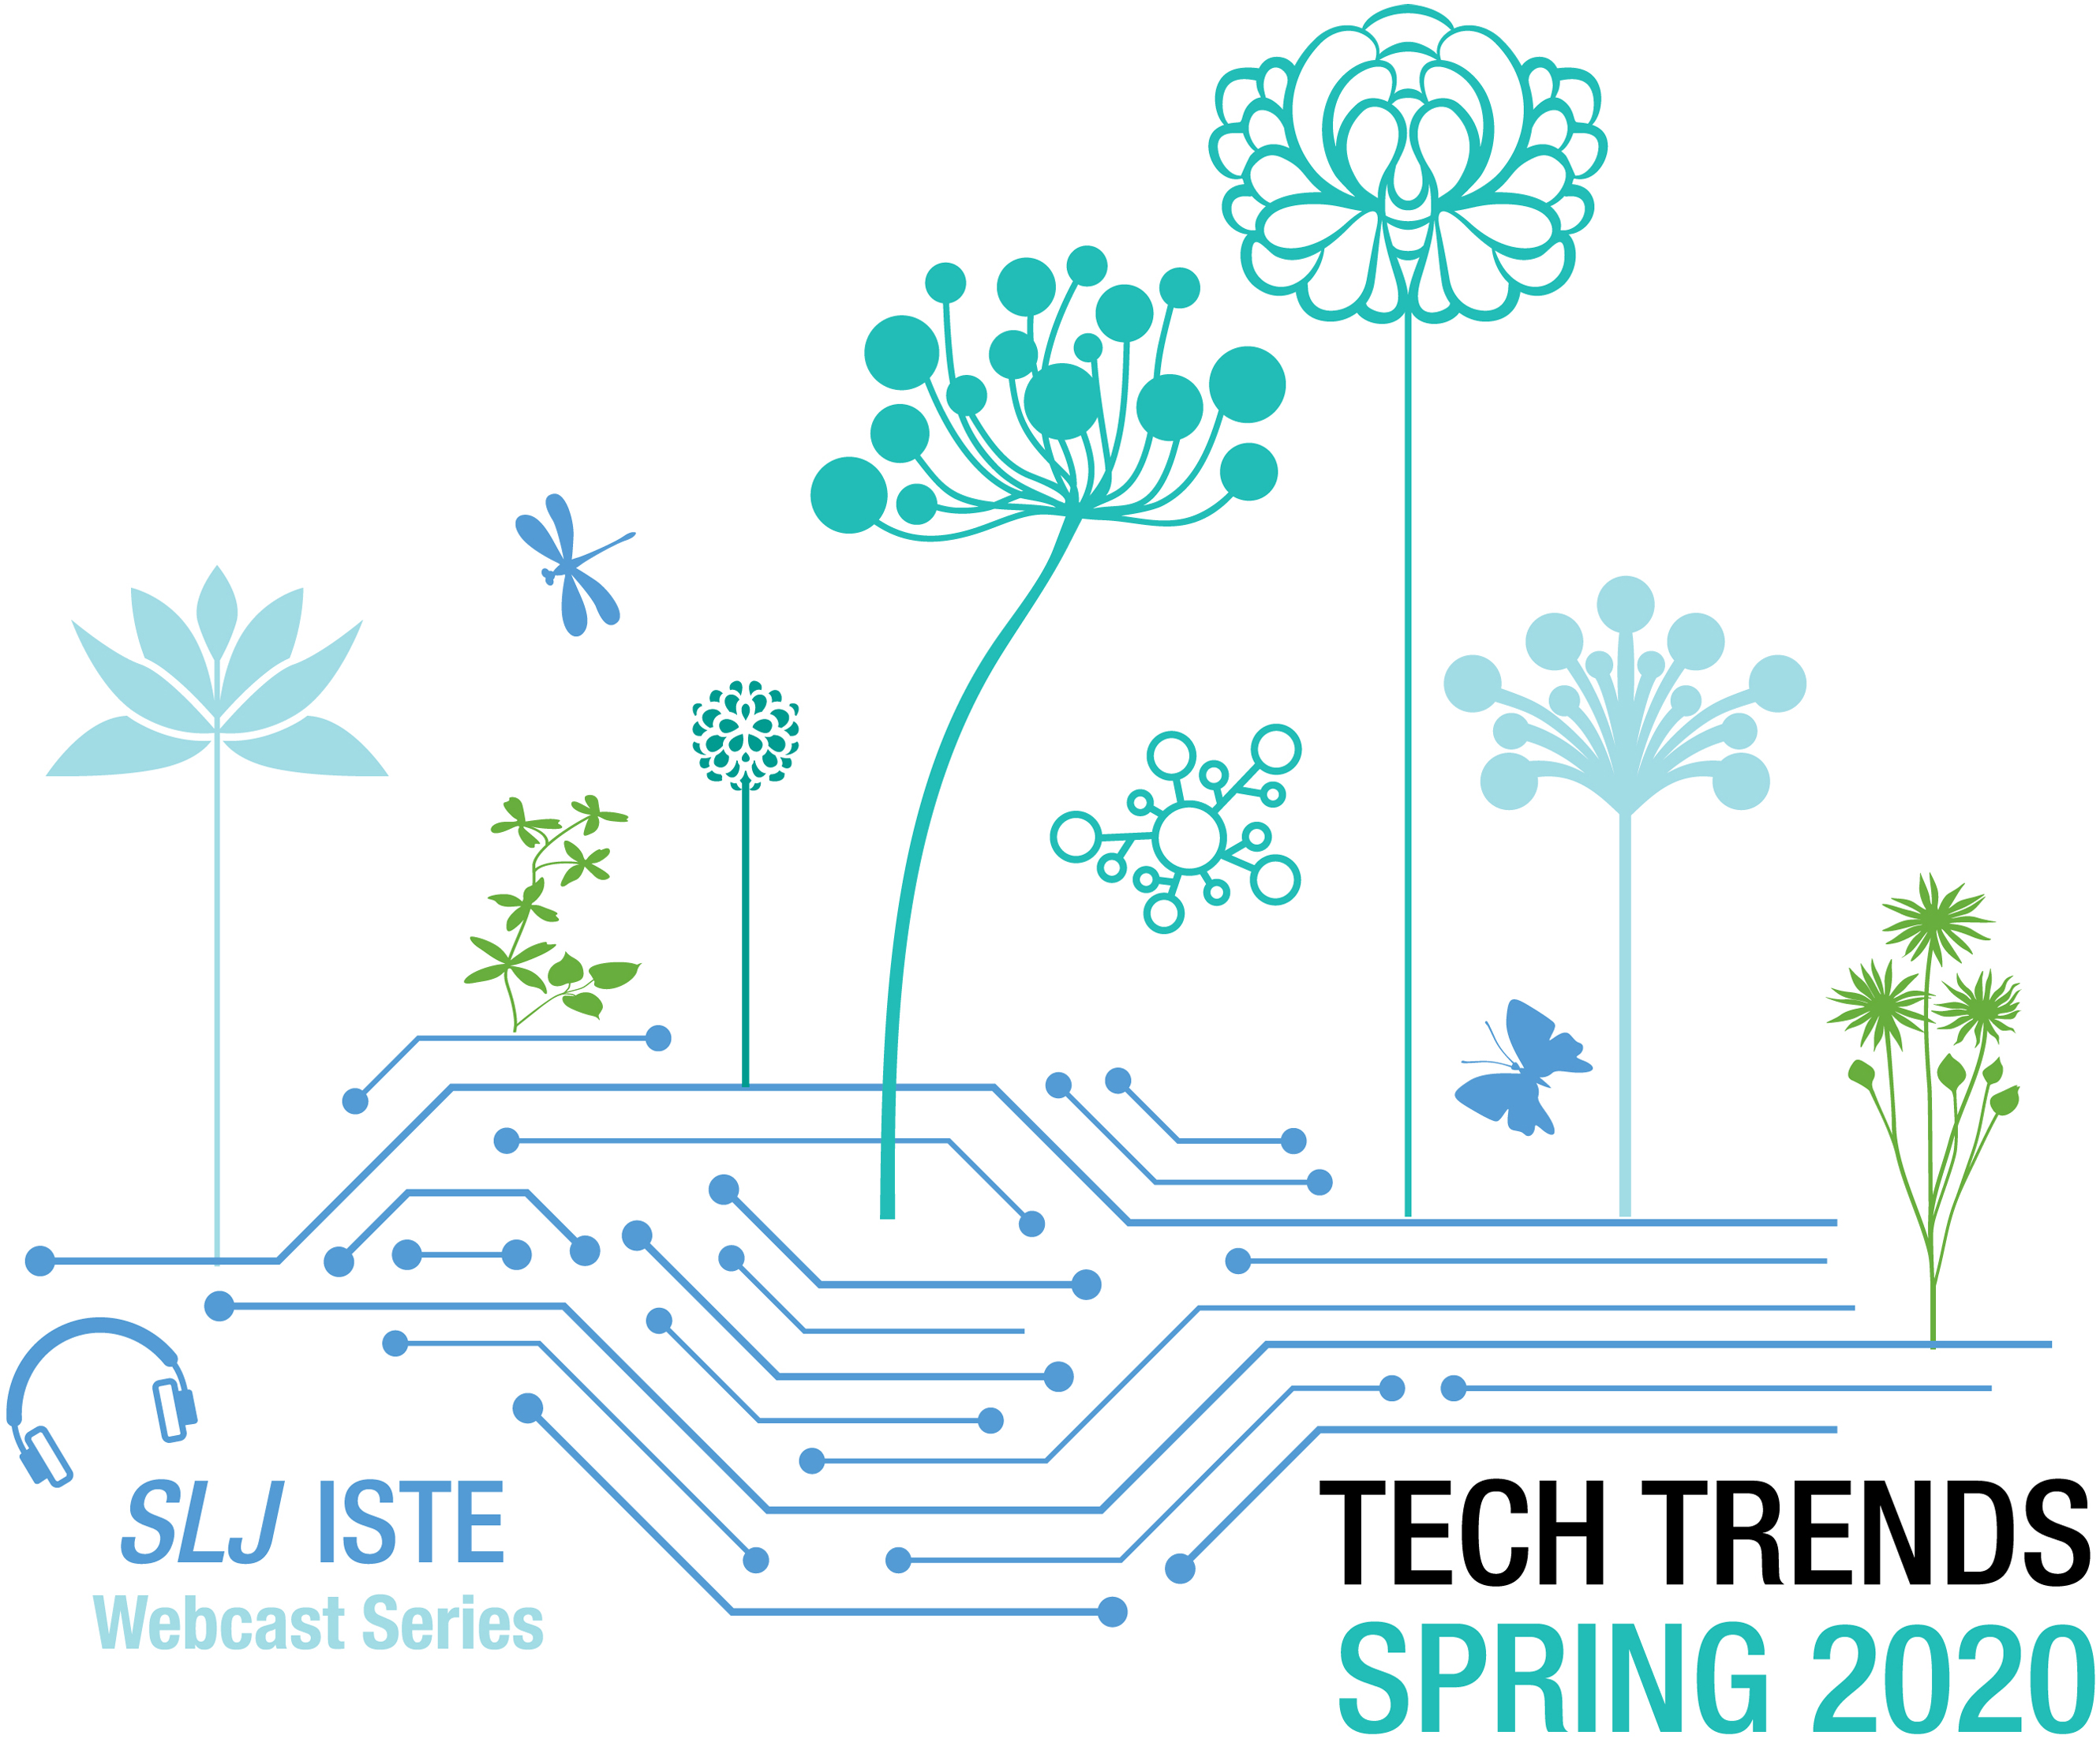 SLJ/ISTE Webcast Series Returns with Tech Trends Spring 2020